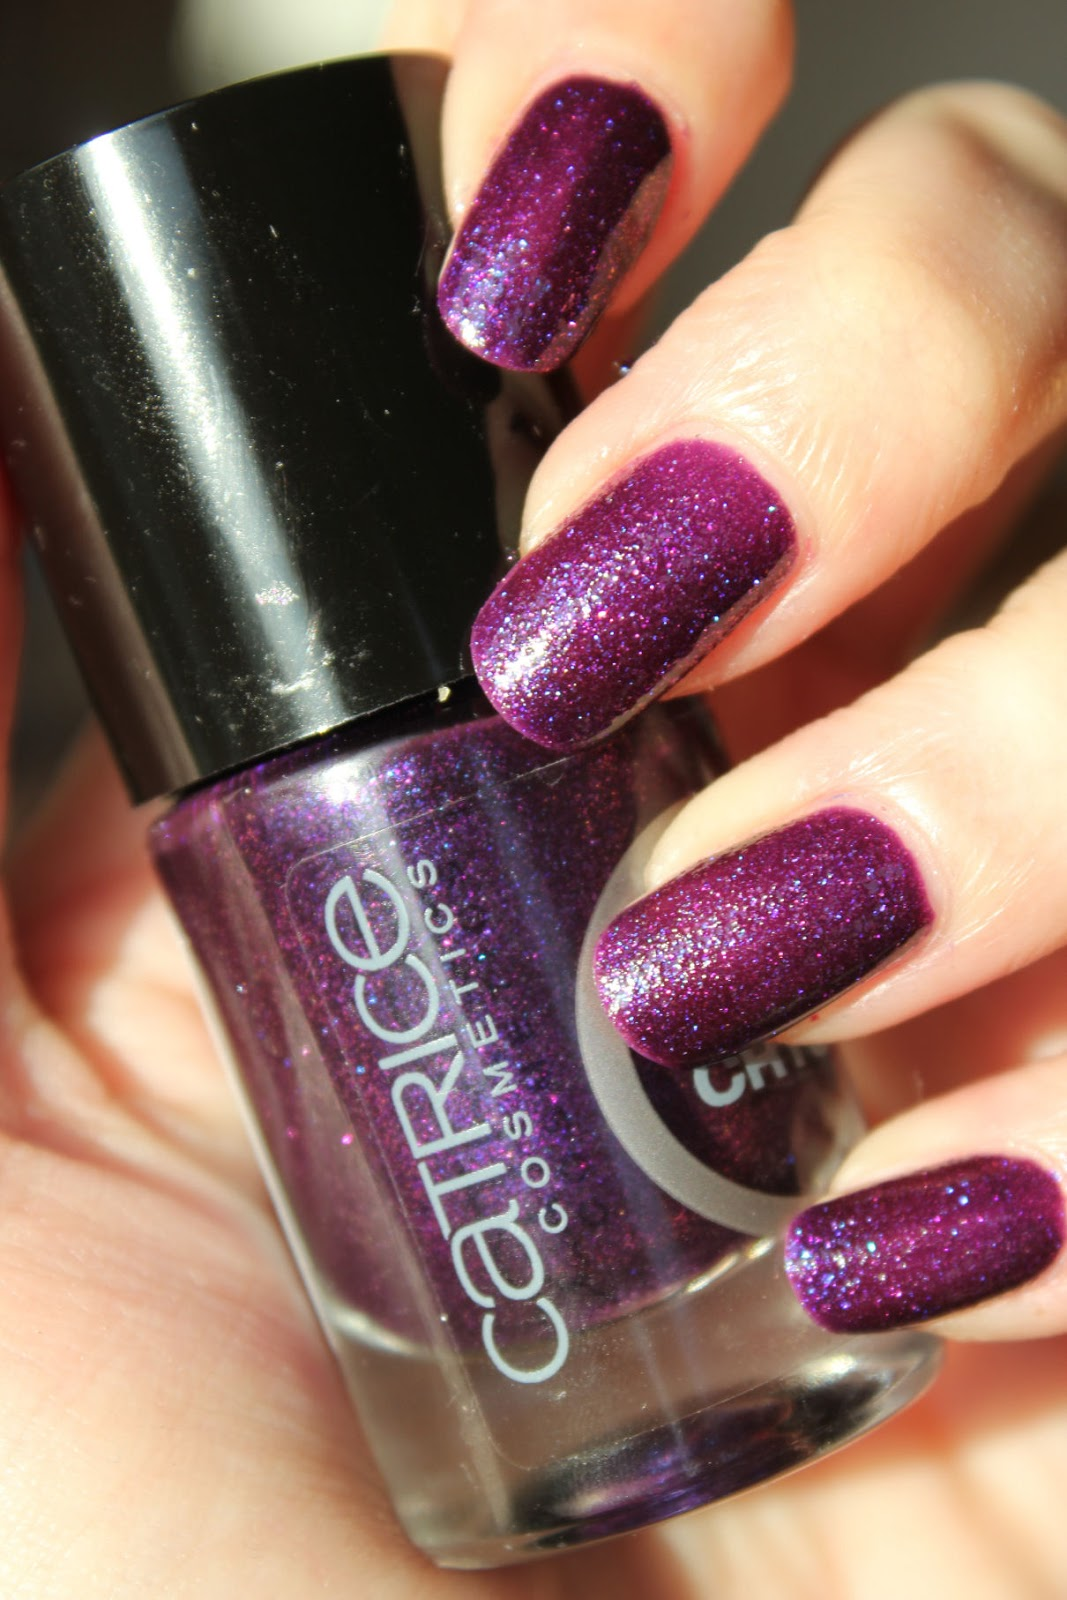 http://lacquediction.blogspot.de/2014/03/catrice-crushed-crystals-02-plumdog.html